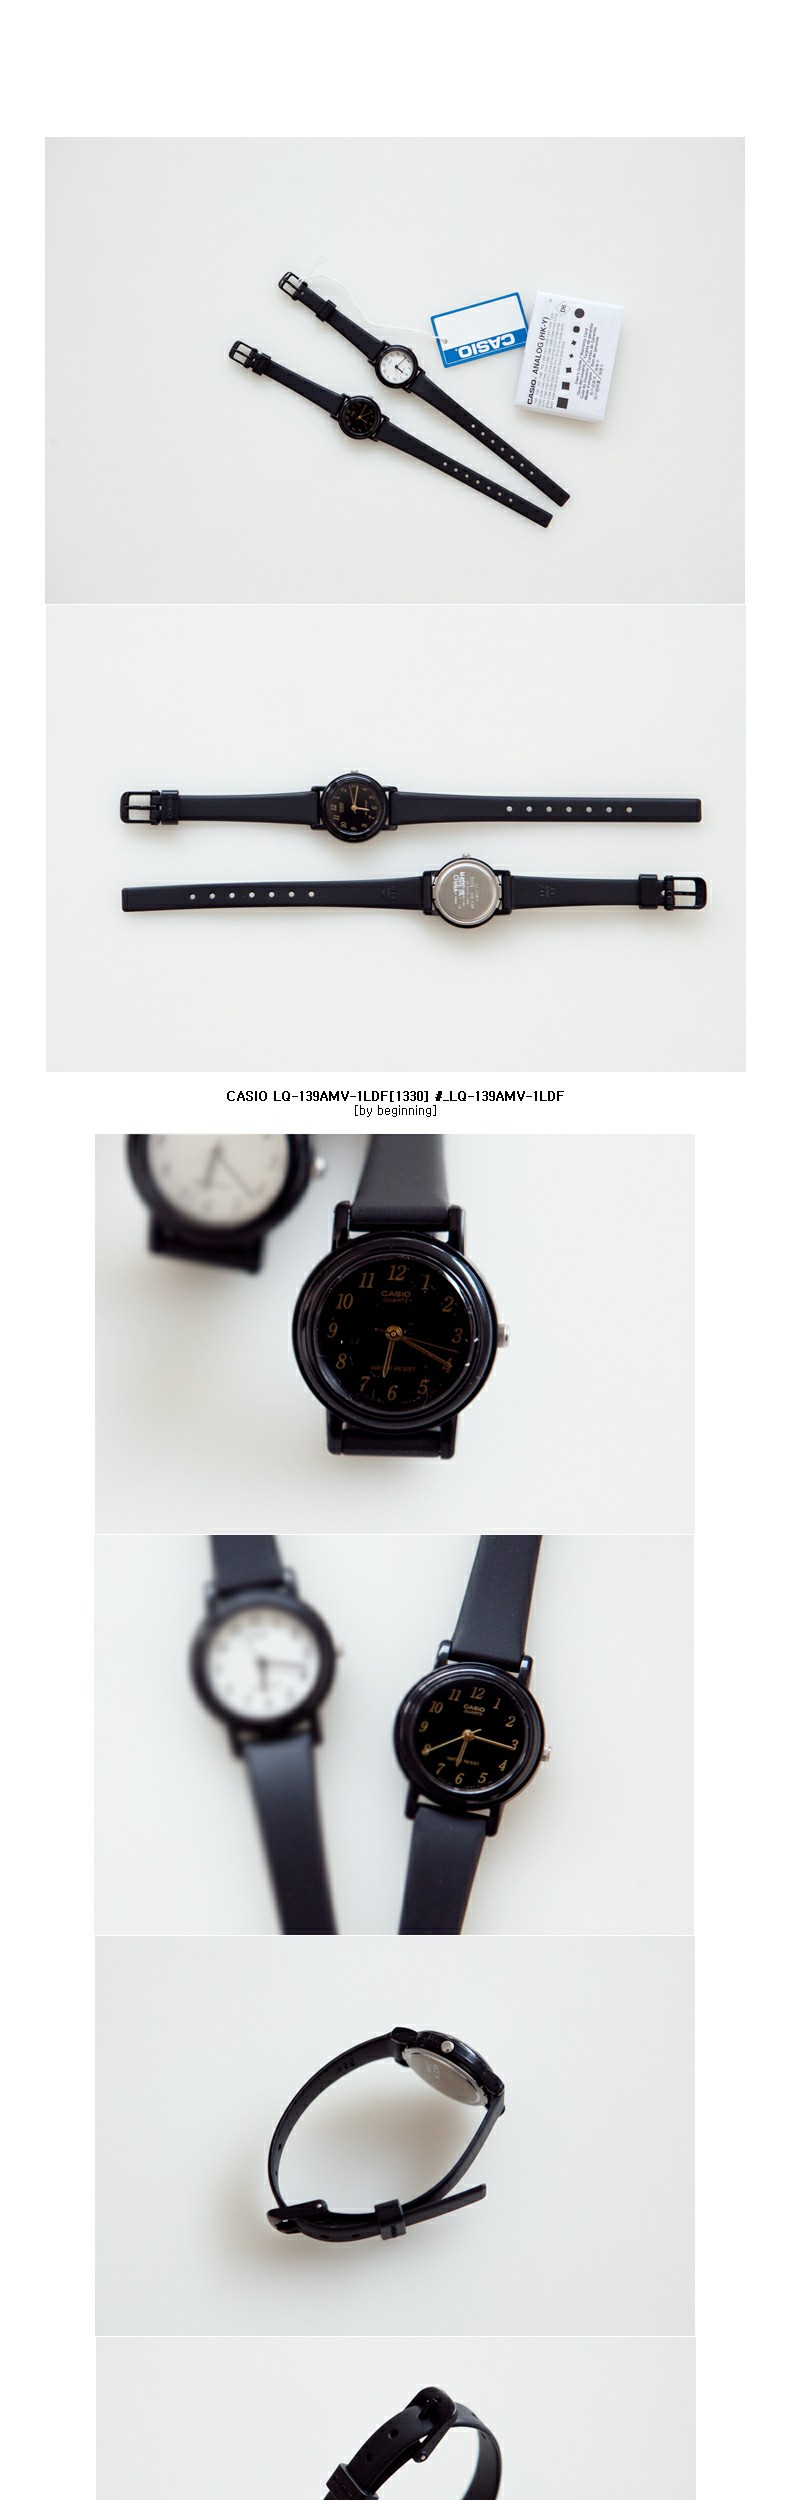 CASIO LQ-139AMV-1LDF